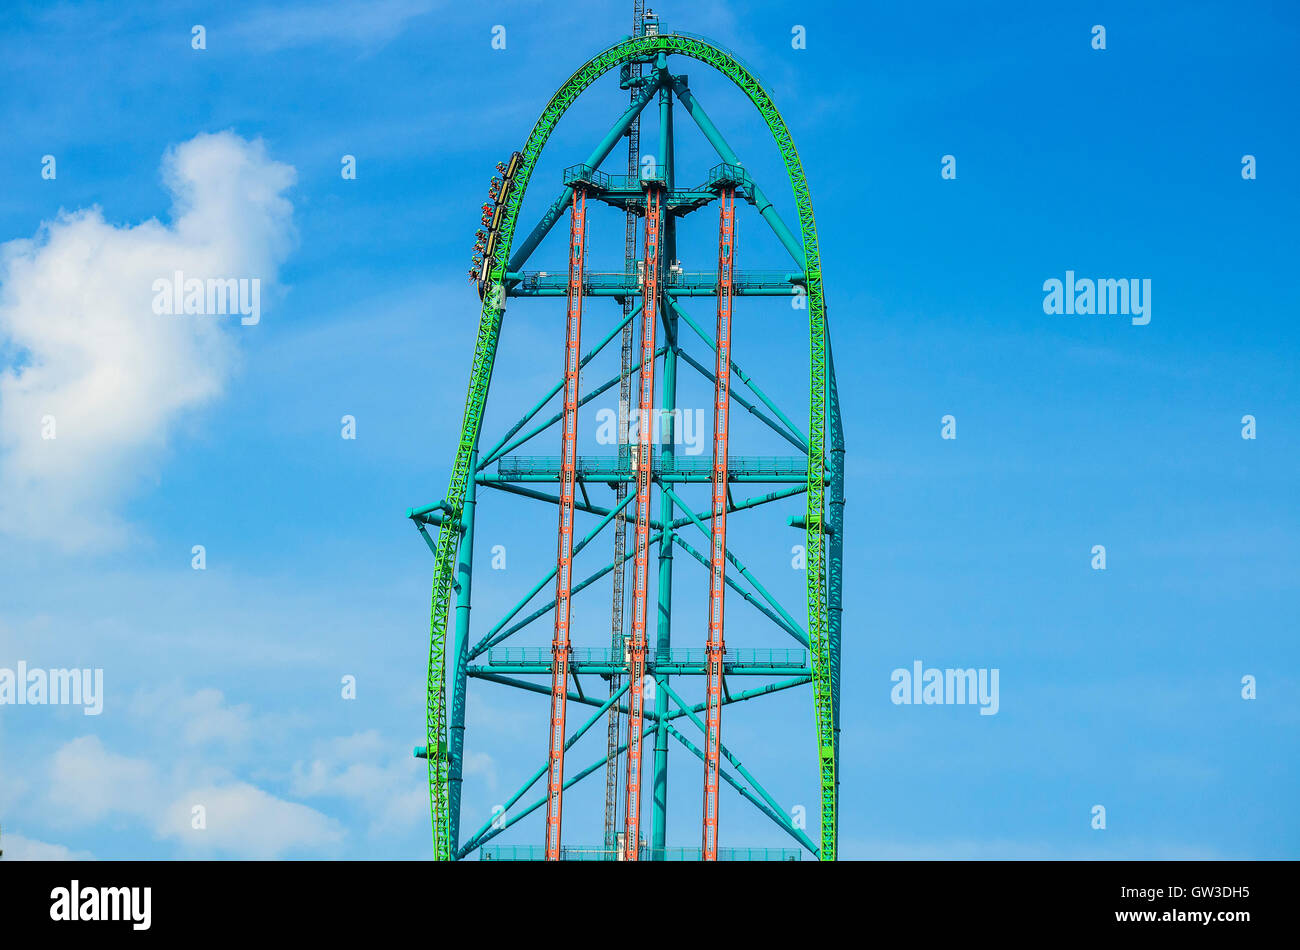 The Kingda Ka At Six Flags New Jersey Tallest Roller Coaster In Diagram Of Related Keywords Suggestions Is And Fastest North America It 456 Feet High Accelerates From 0 To 128 35sec Great Adv